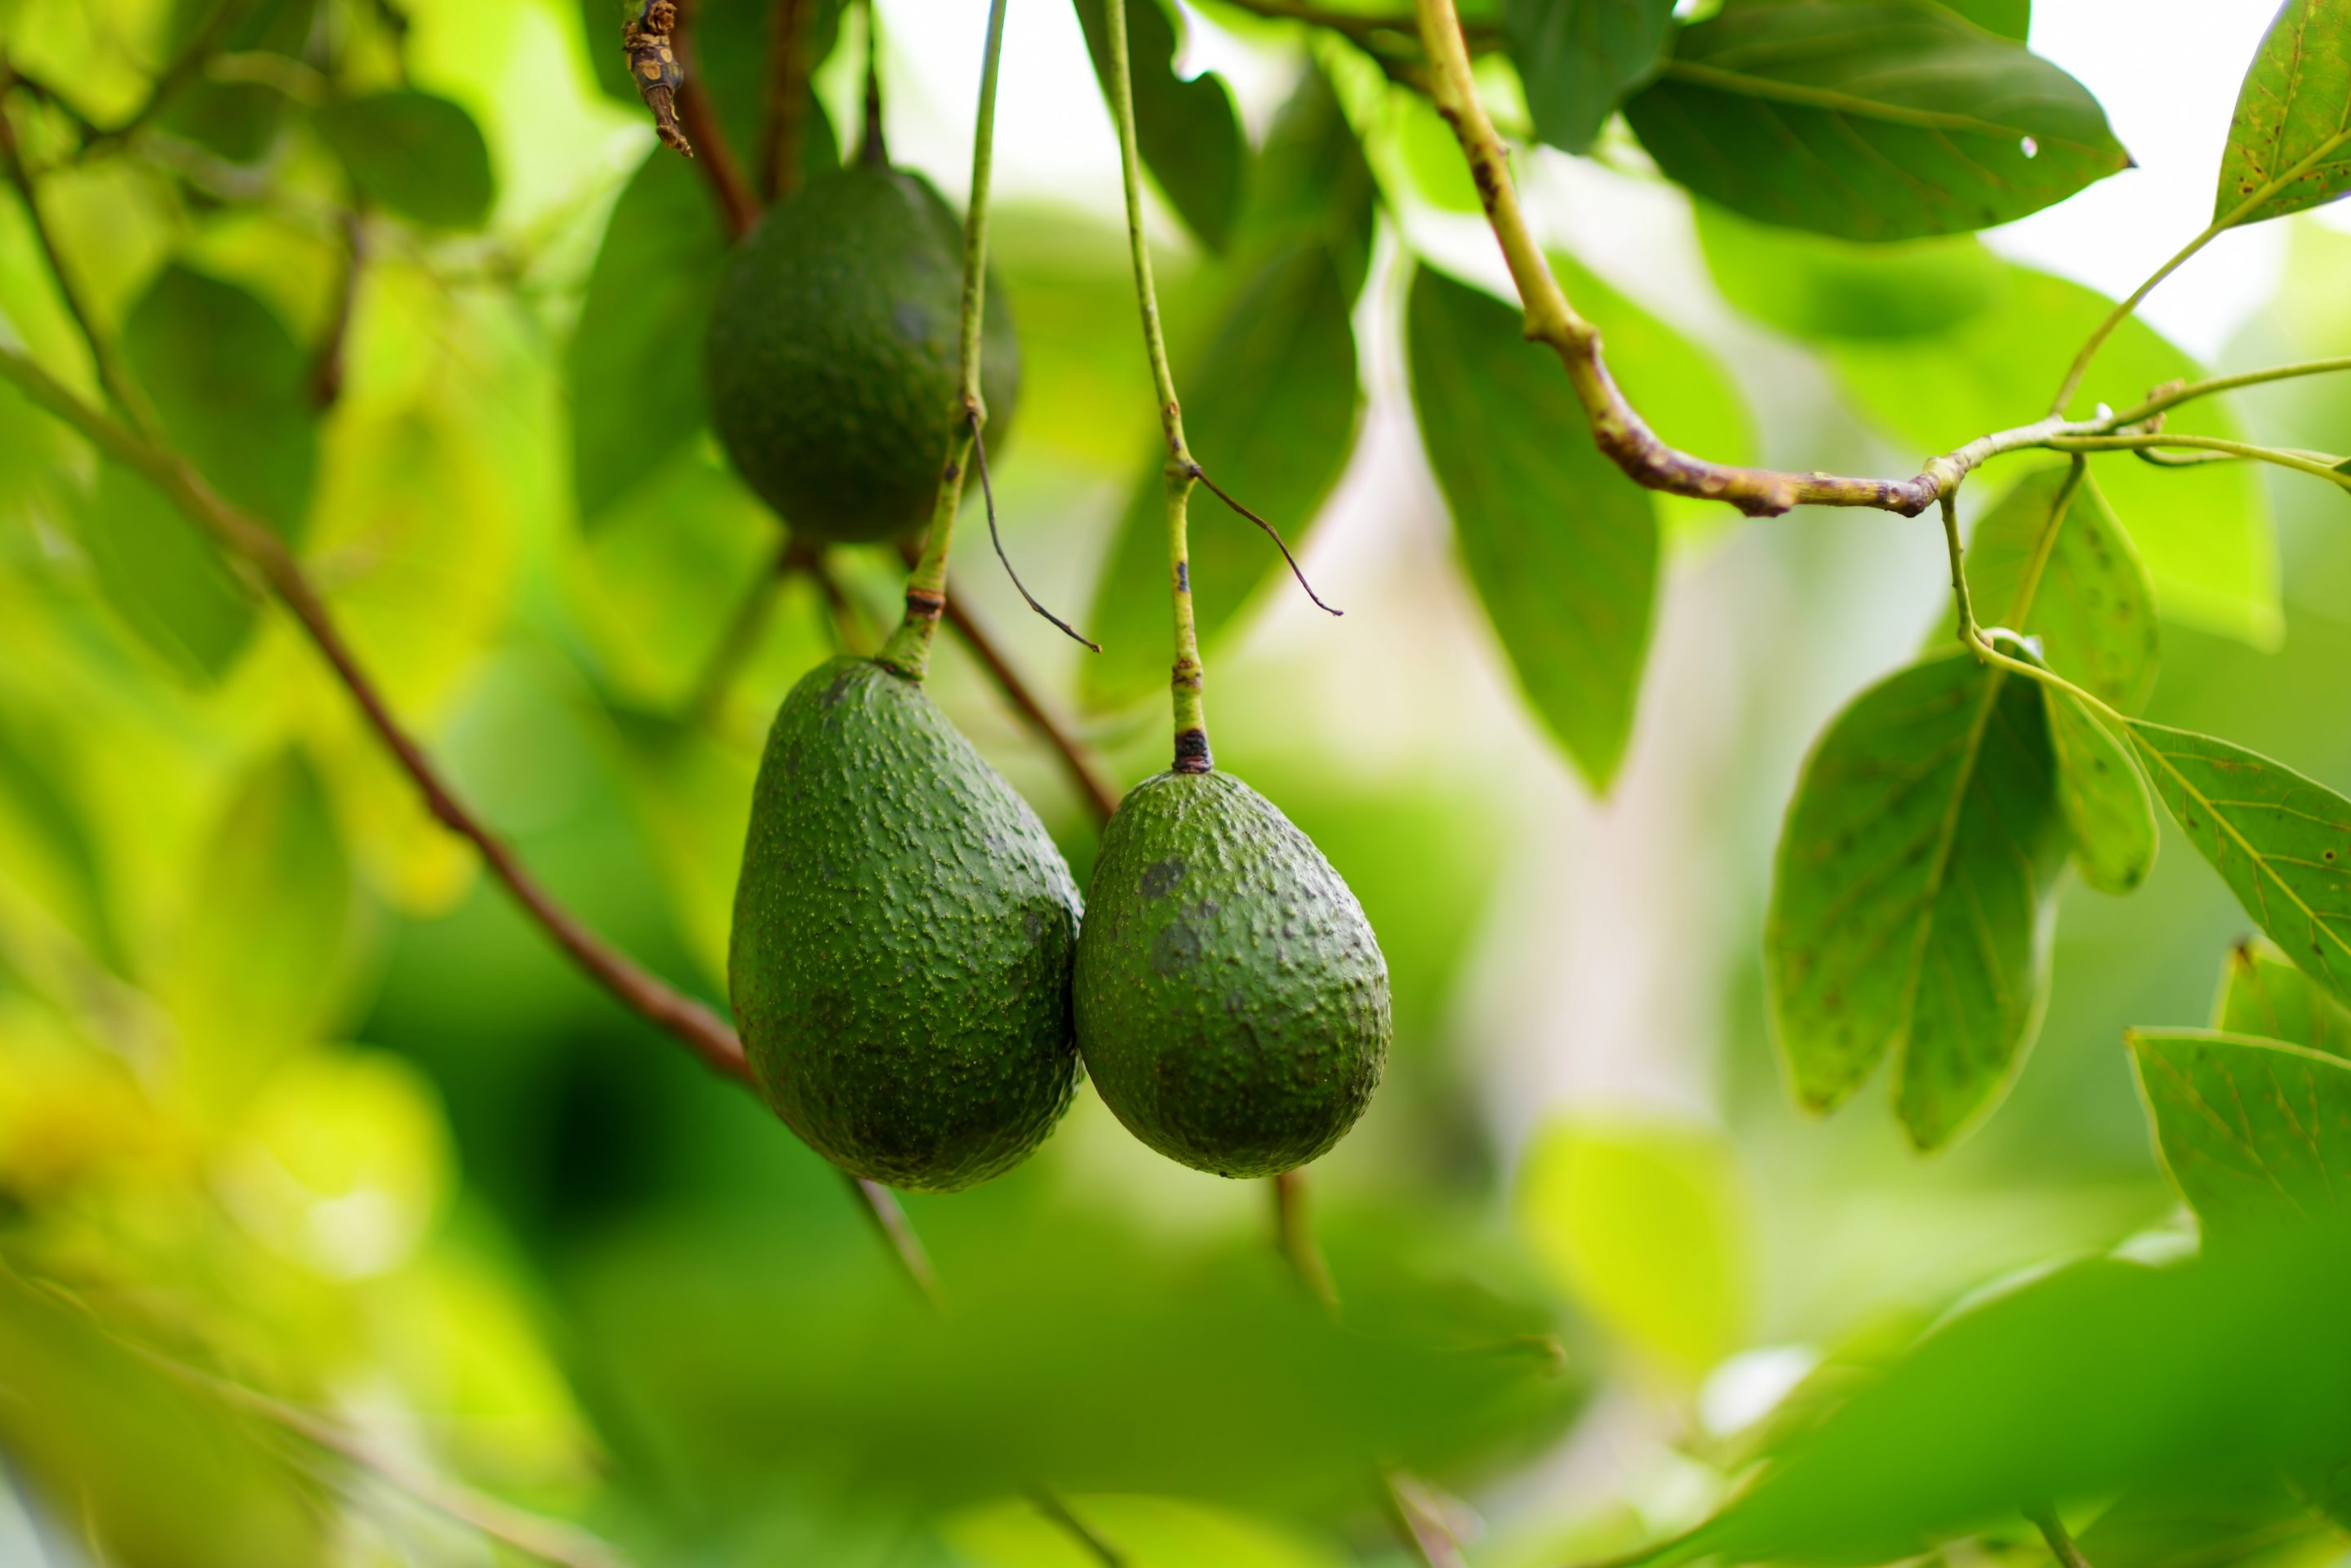 4 Excellent PR Lessons From Growing An Avocado Tree